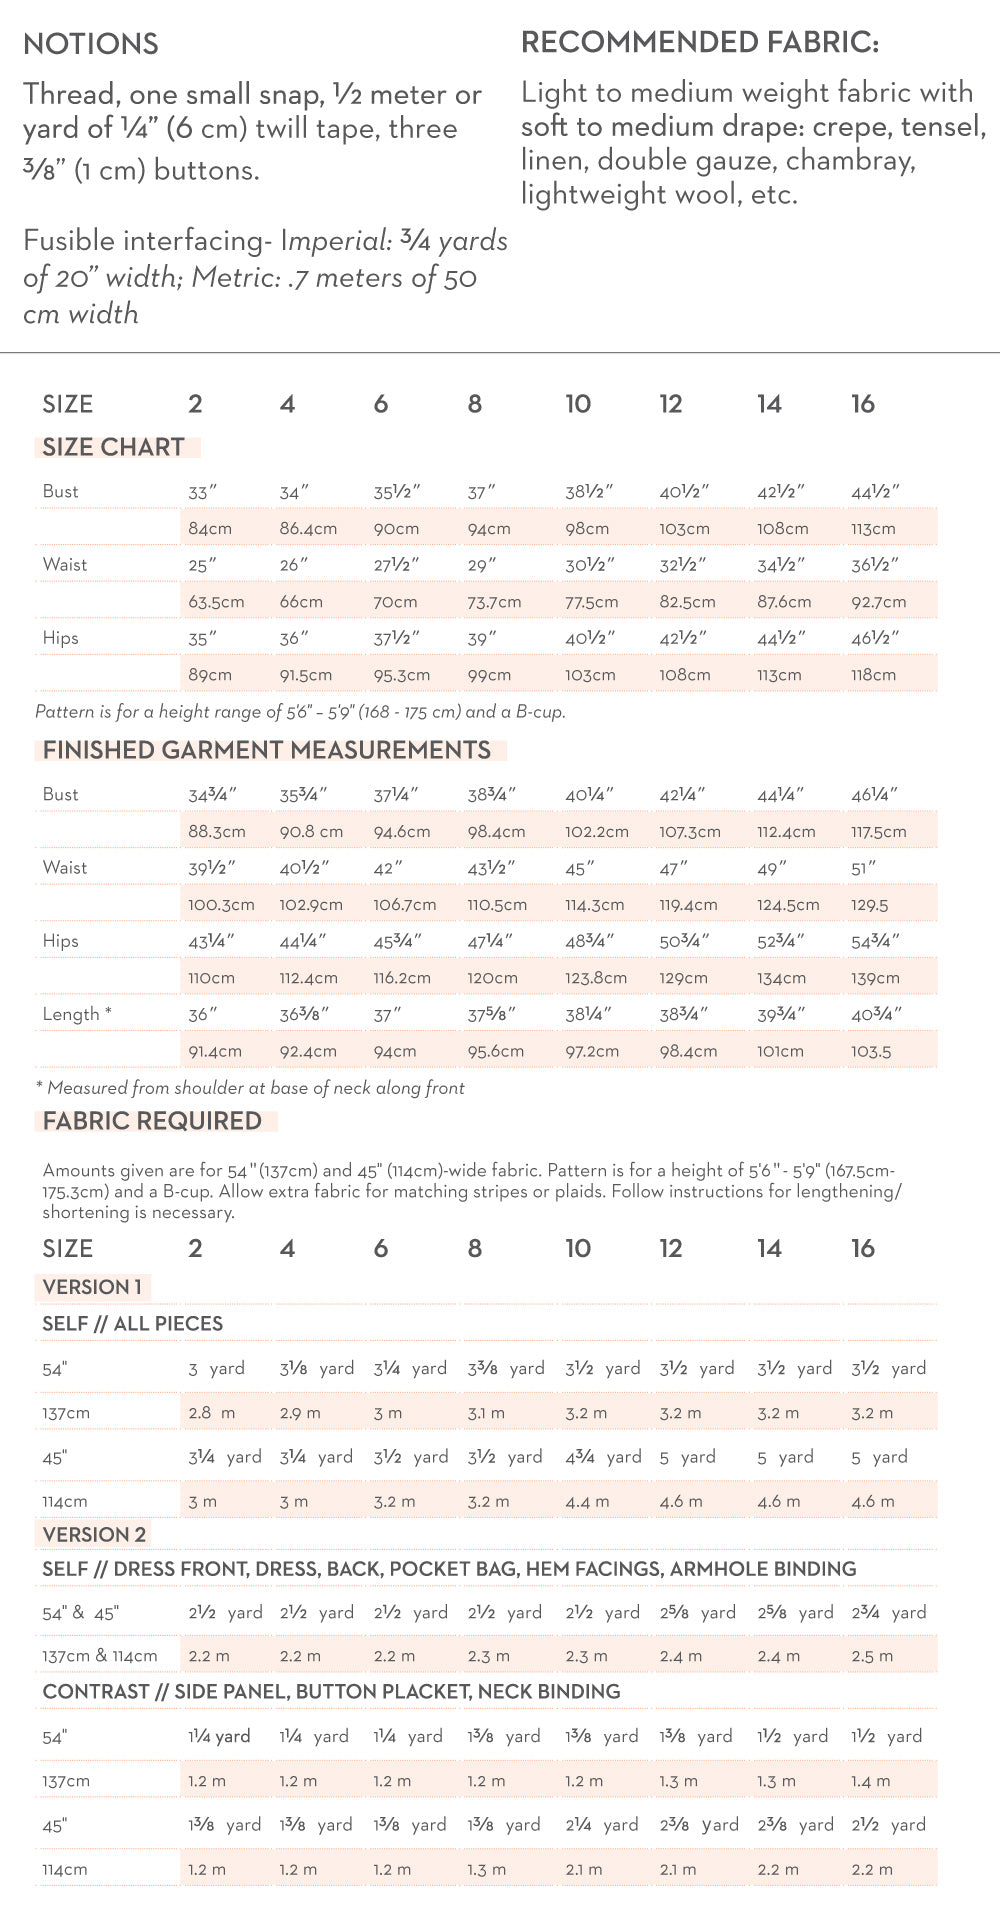 Hannah Size and Fabric Quantity Charts